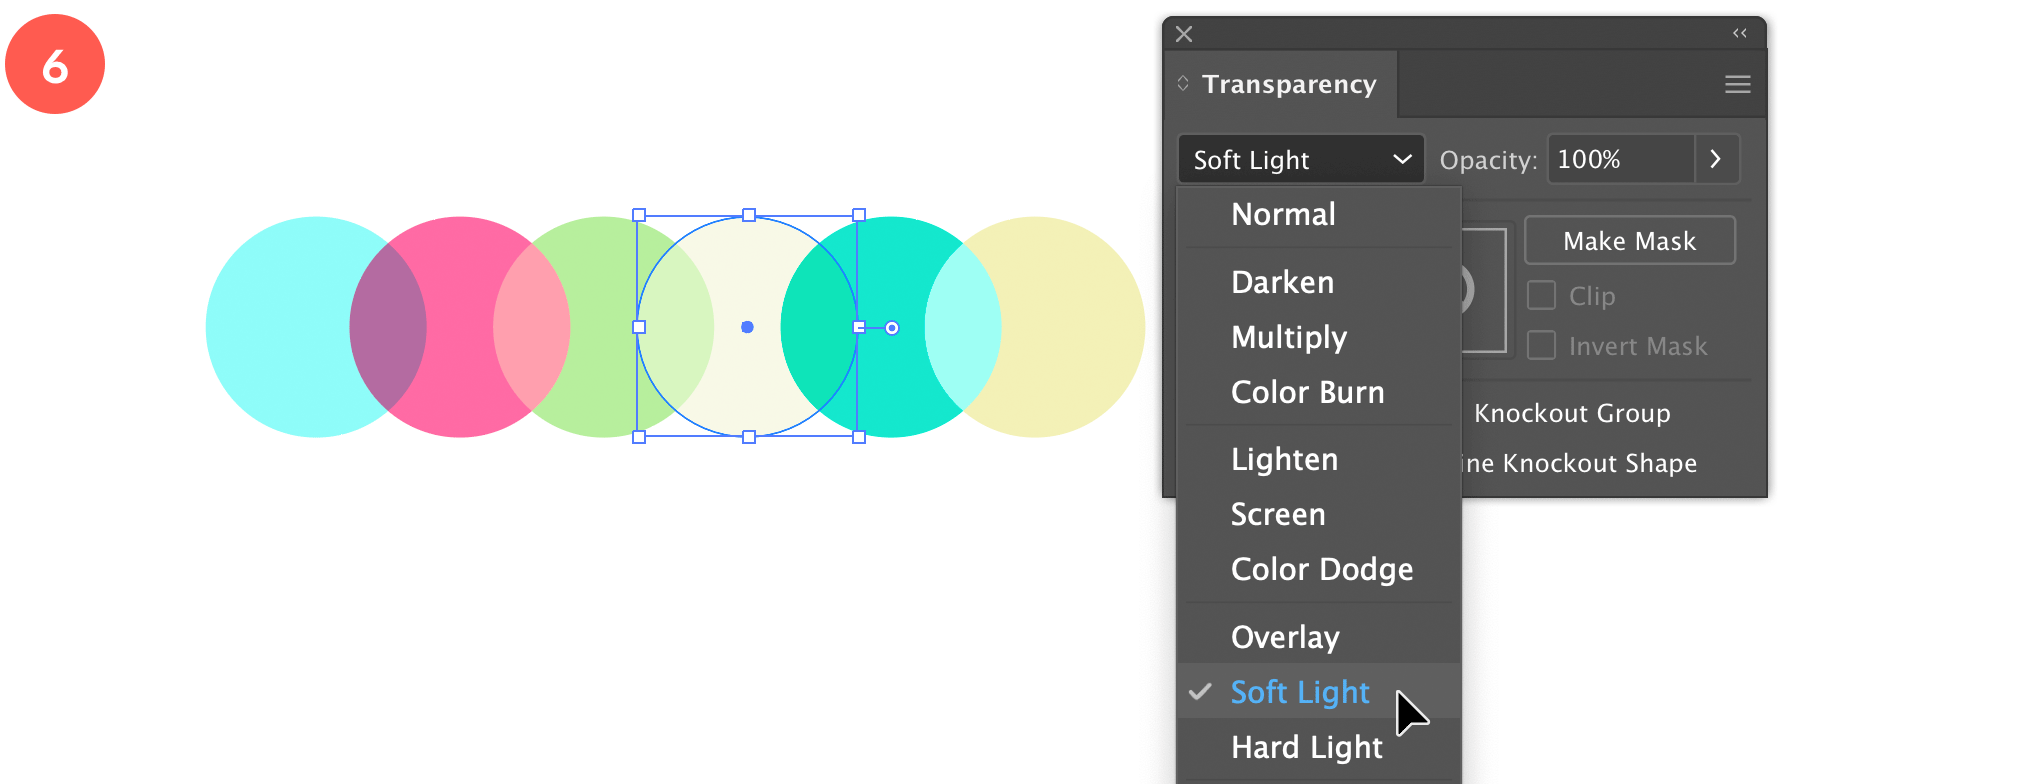 Experiment with transparency modes